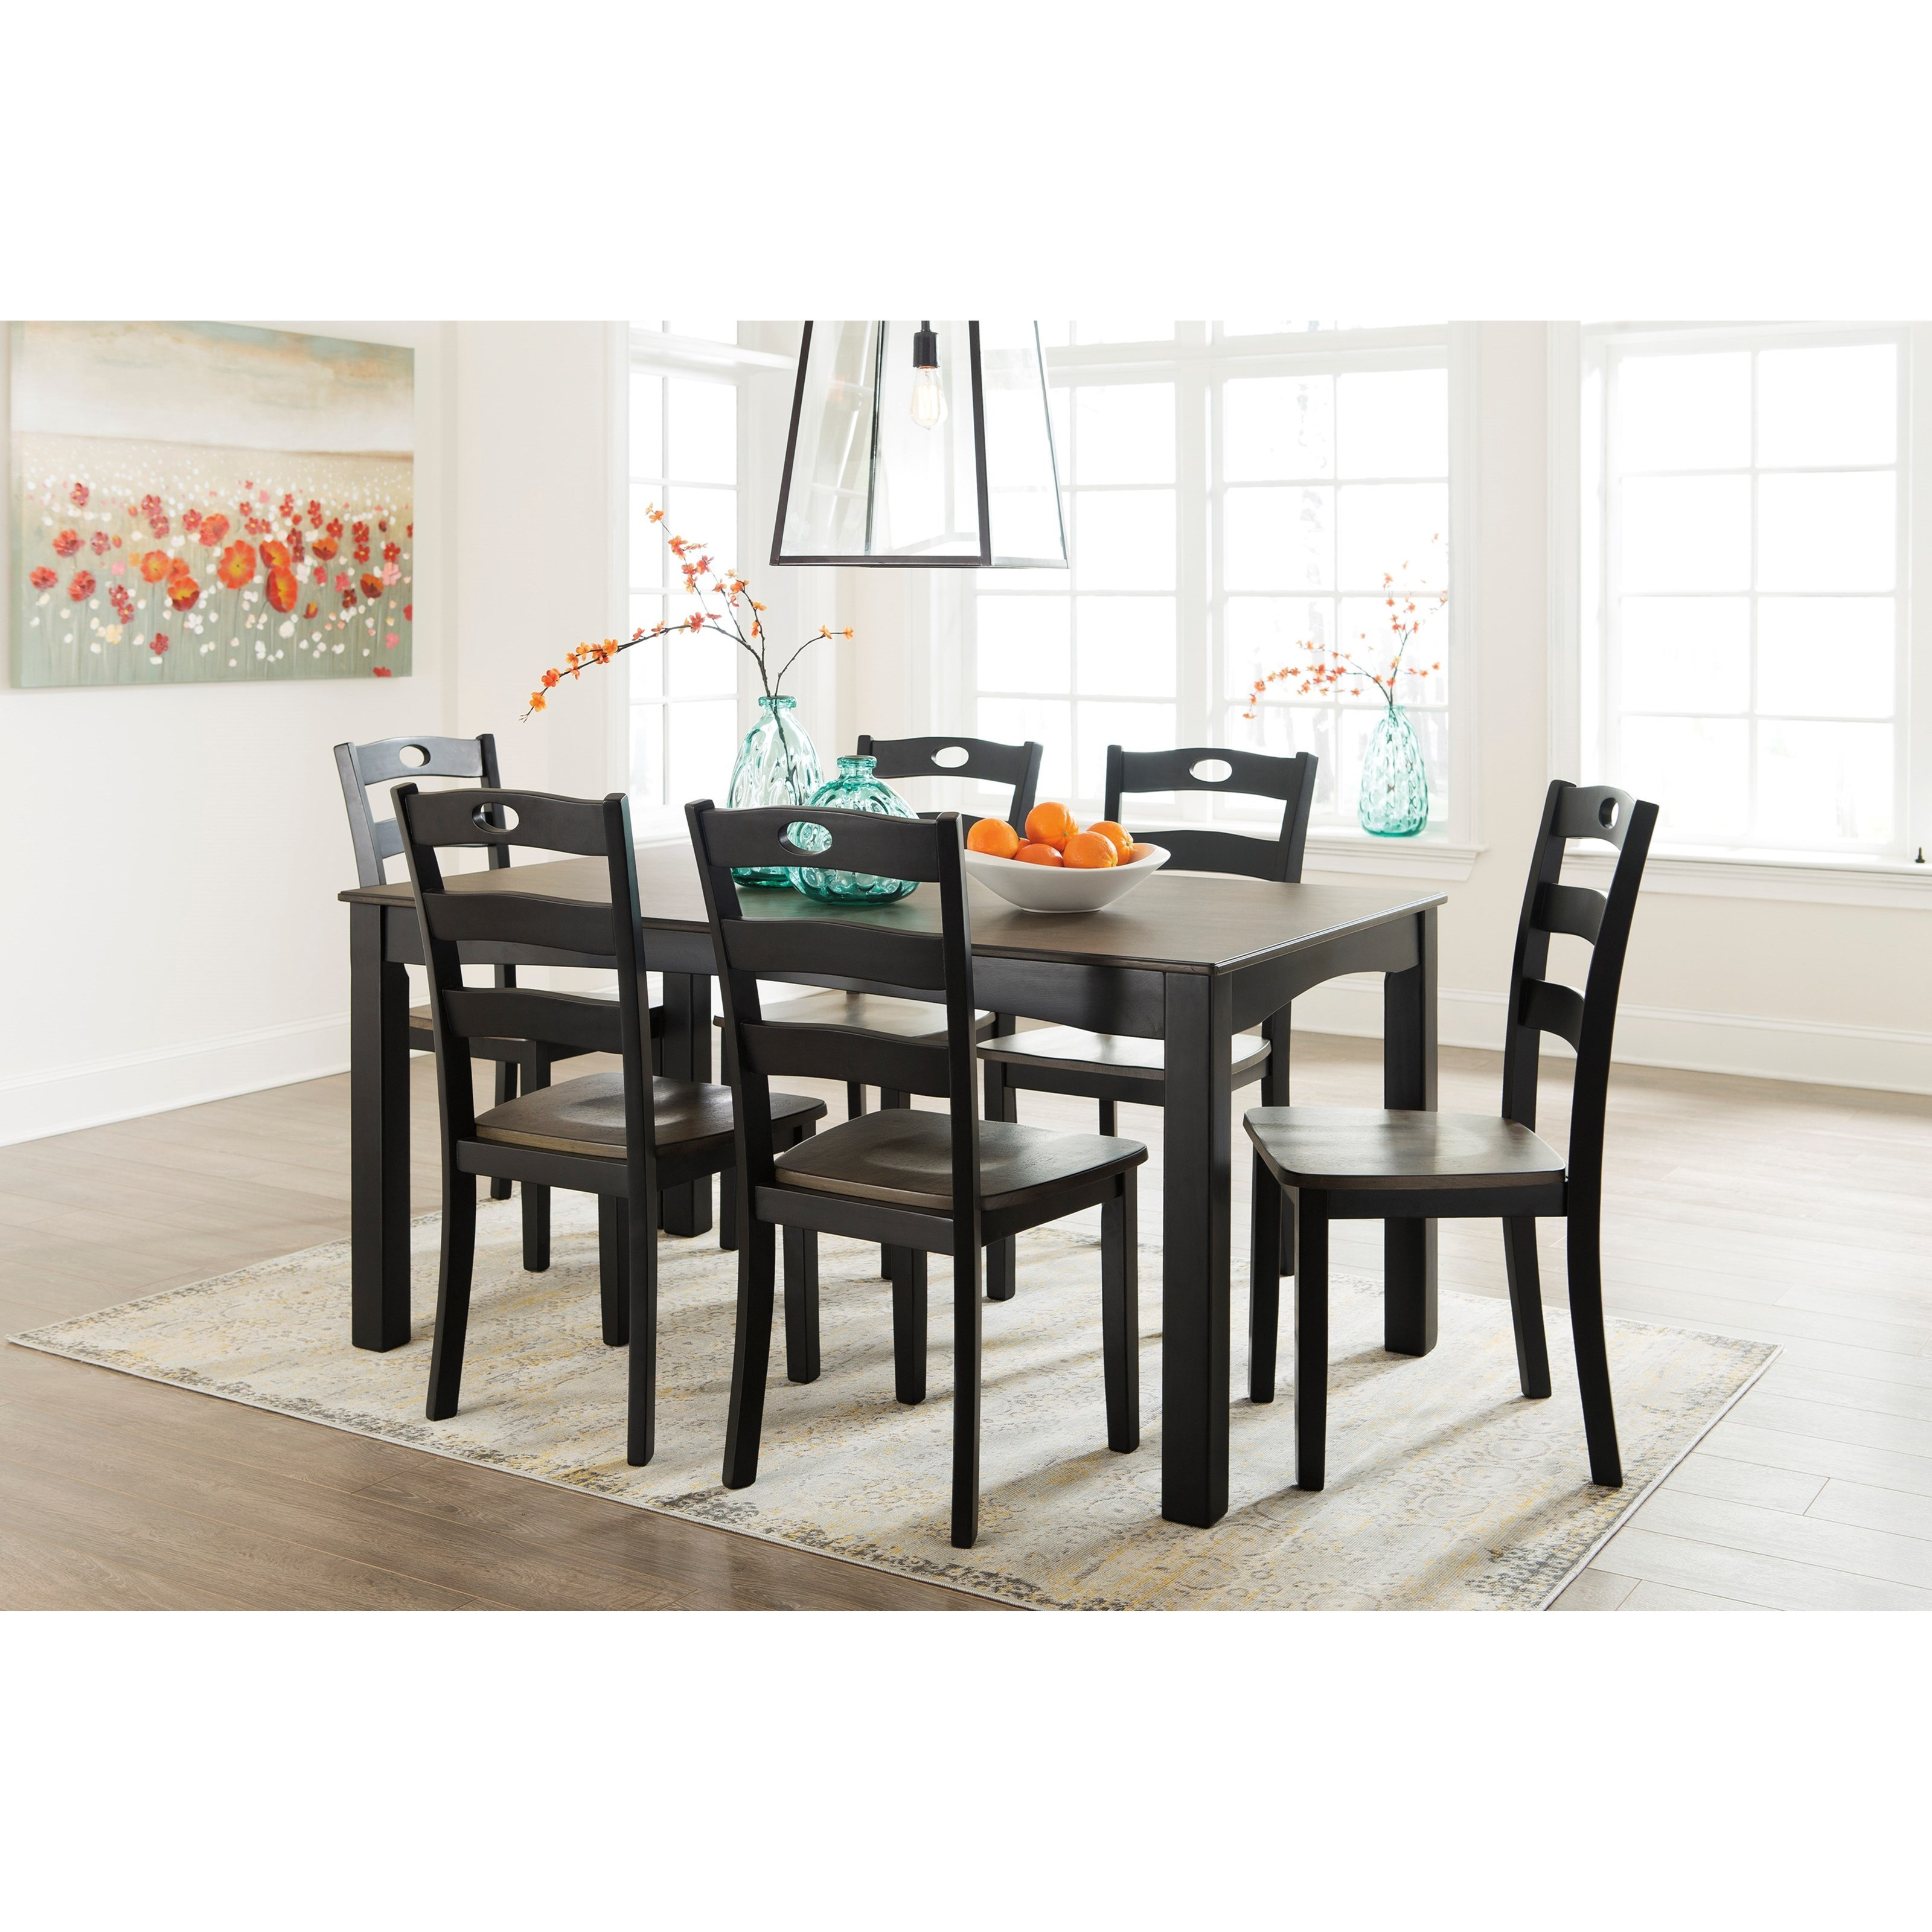 signature design by ashley froshburg two tone finish 7 piece dining room table set value city. Black Bedroom Furniture Sets. Home Design Ideas